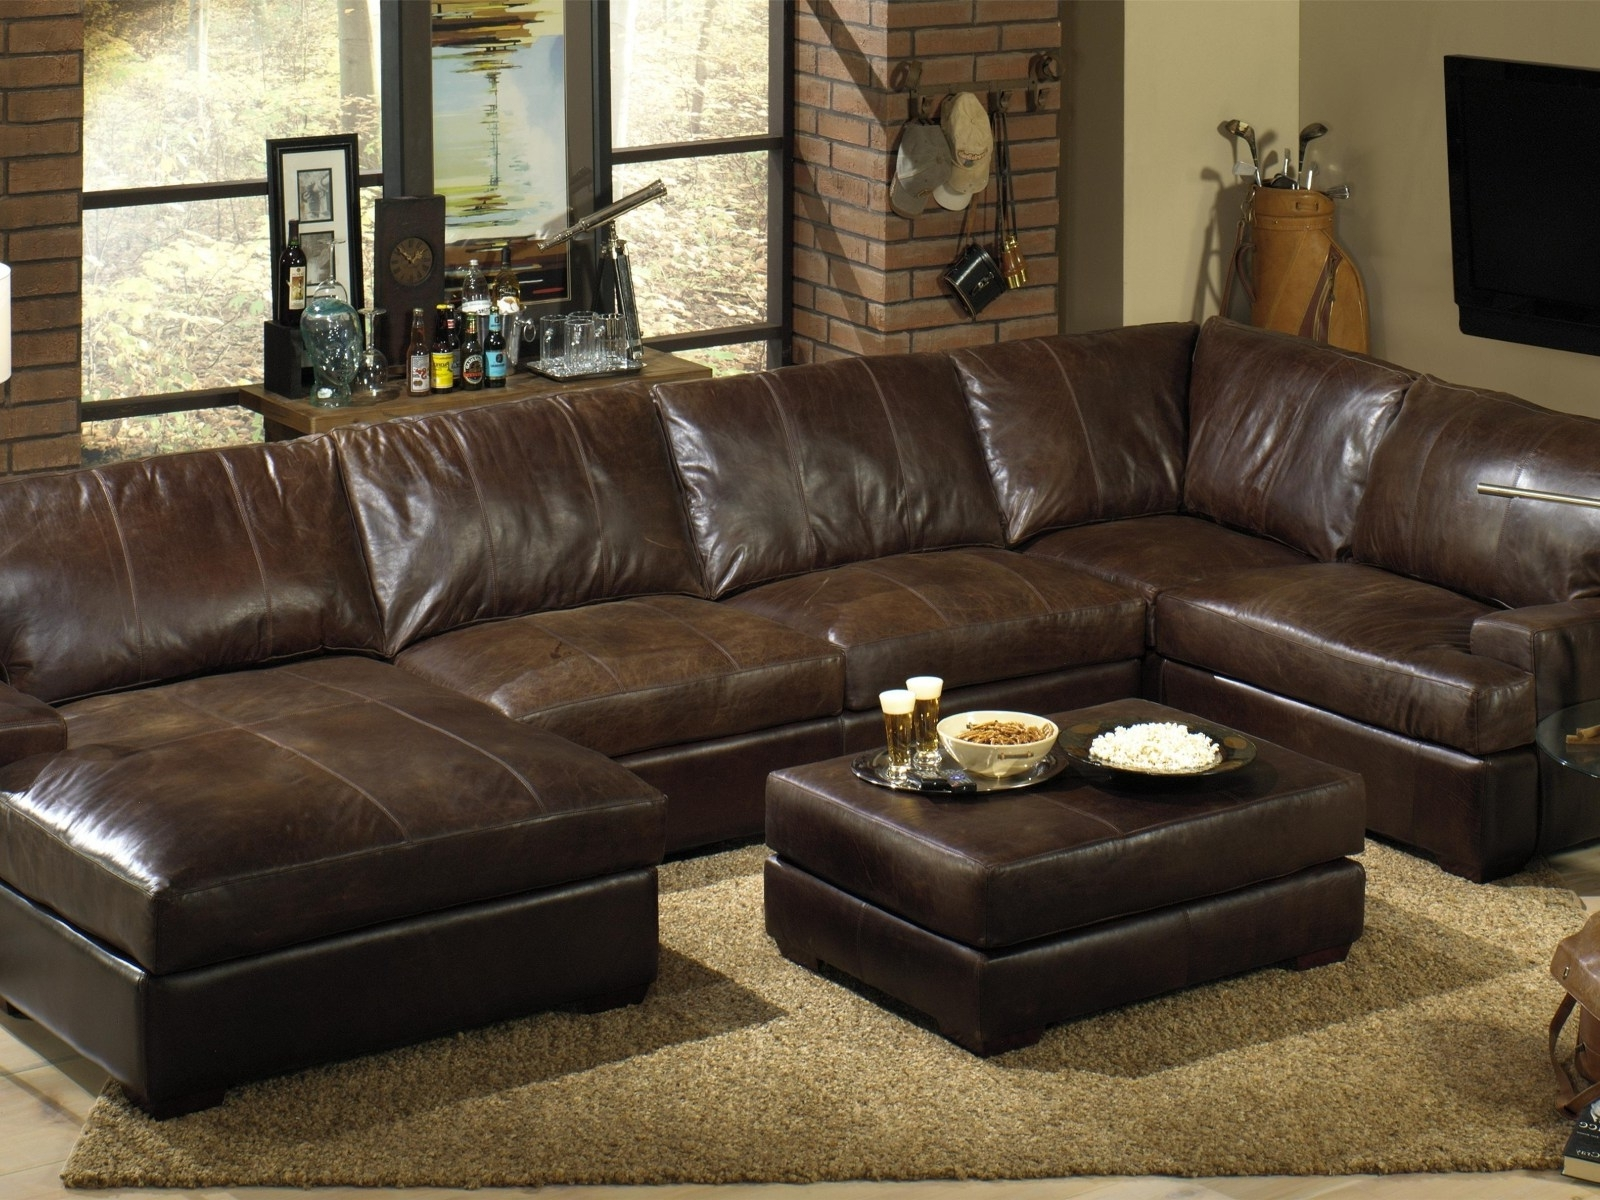 Chaise Lounge Sectional Sofas For Well Known ▻ Sofa : 39 Sectional Sofa With Chaise Lounge Leather Sectional (View 4 of 15)